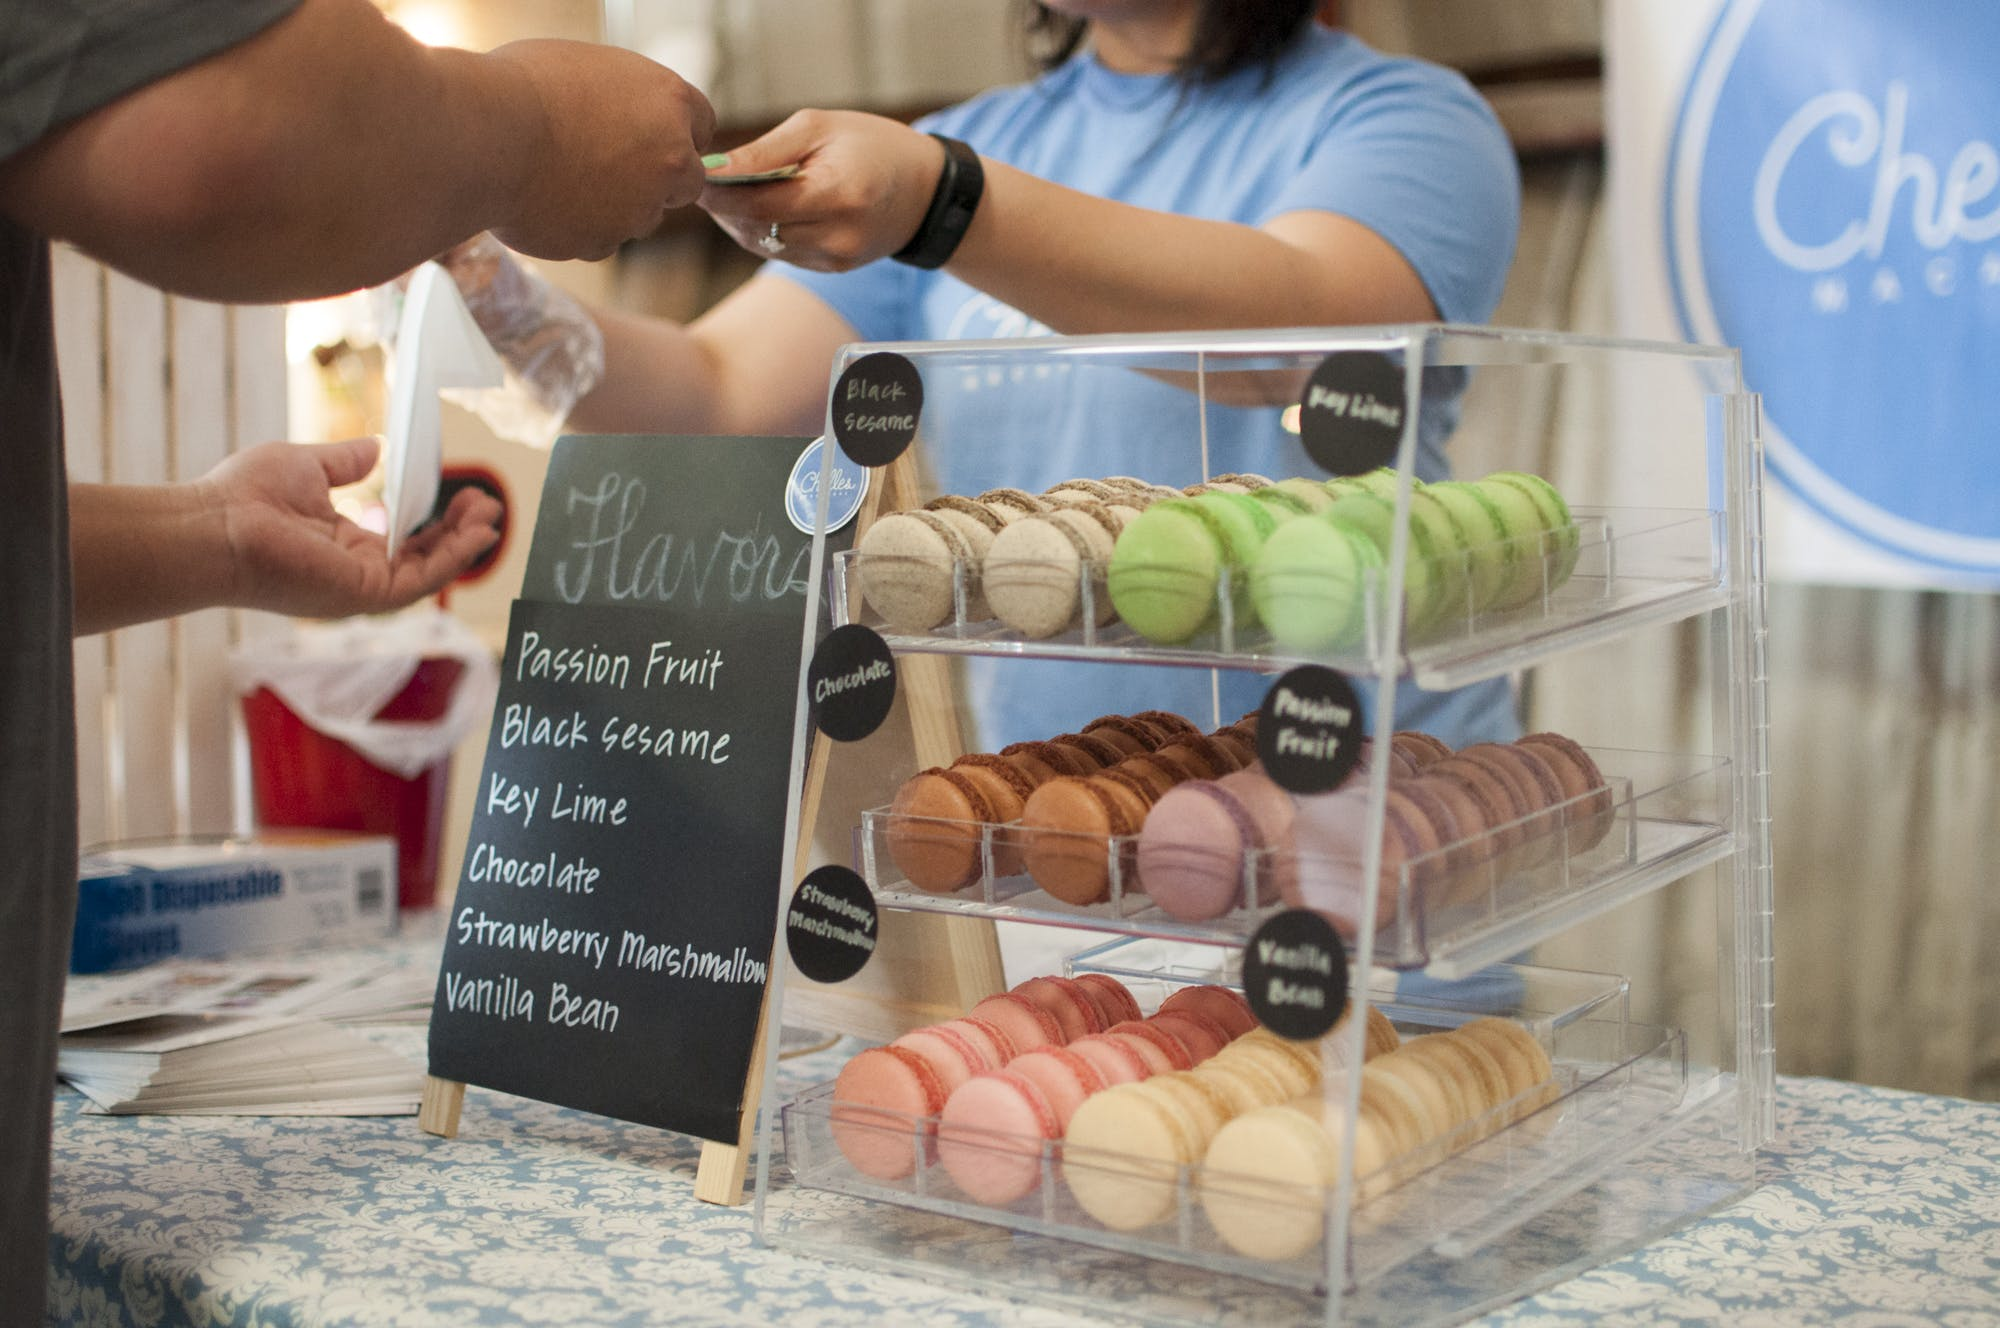 Black Sesame Key Lime Chocolate and Strawberry Macarons in a Glass Display